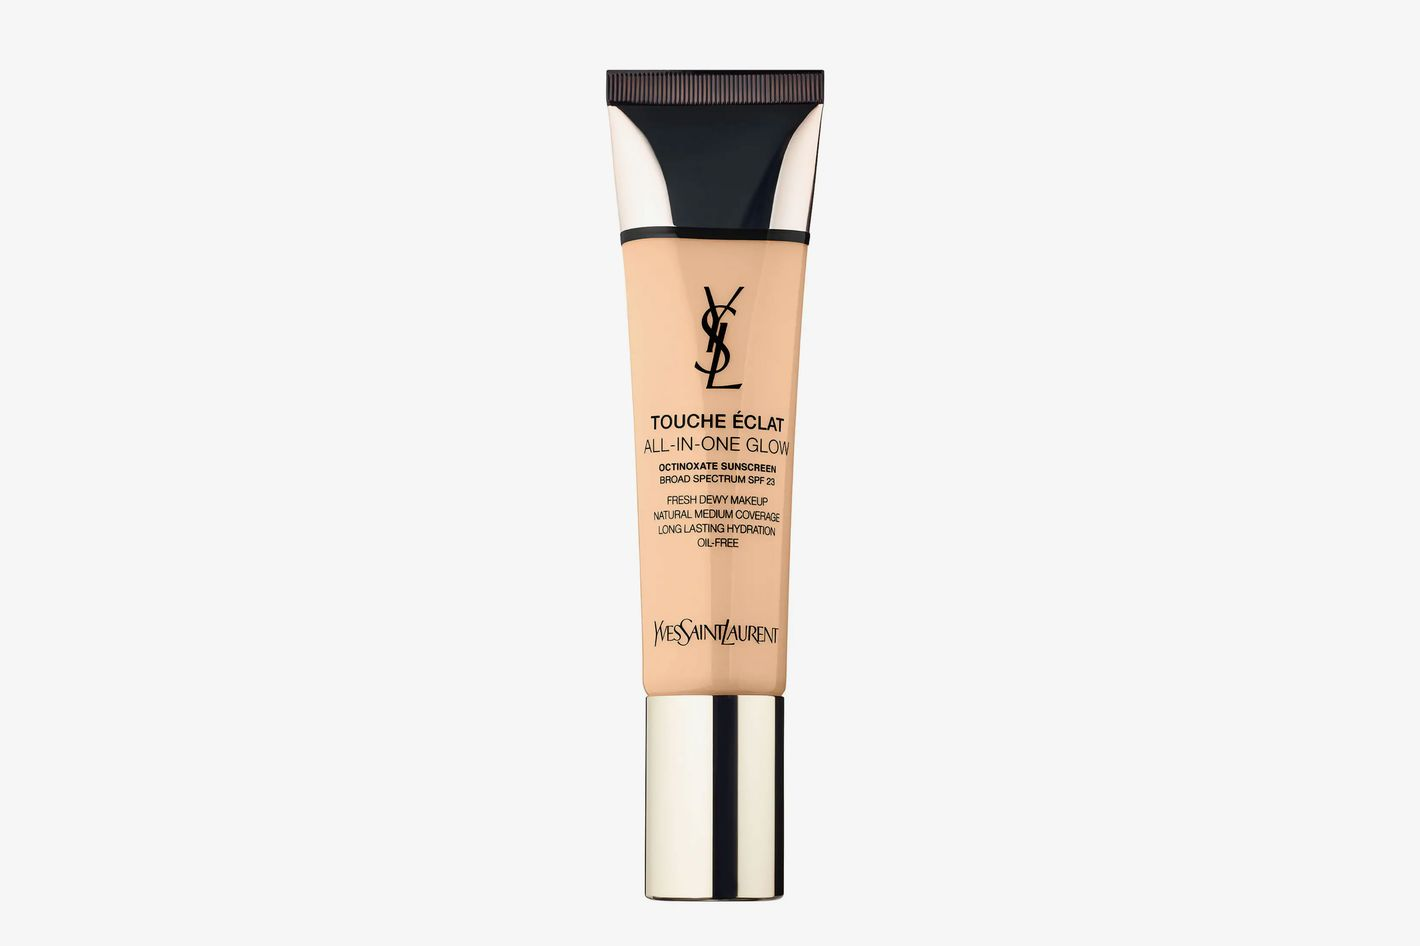 Yves Saint Laurent Touche Éclat All-in-One Glow